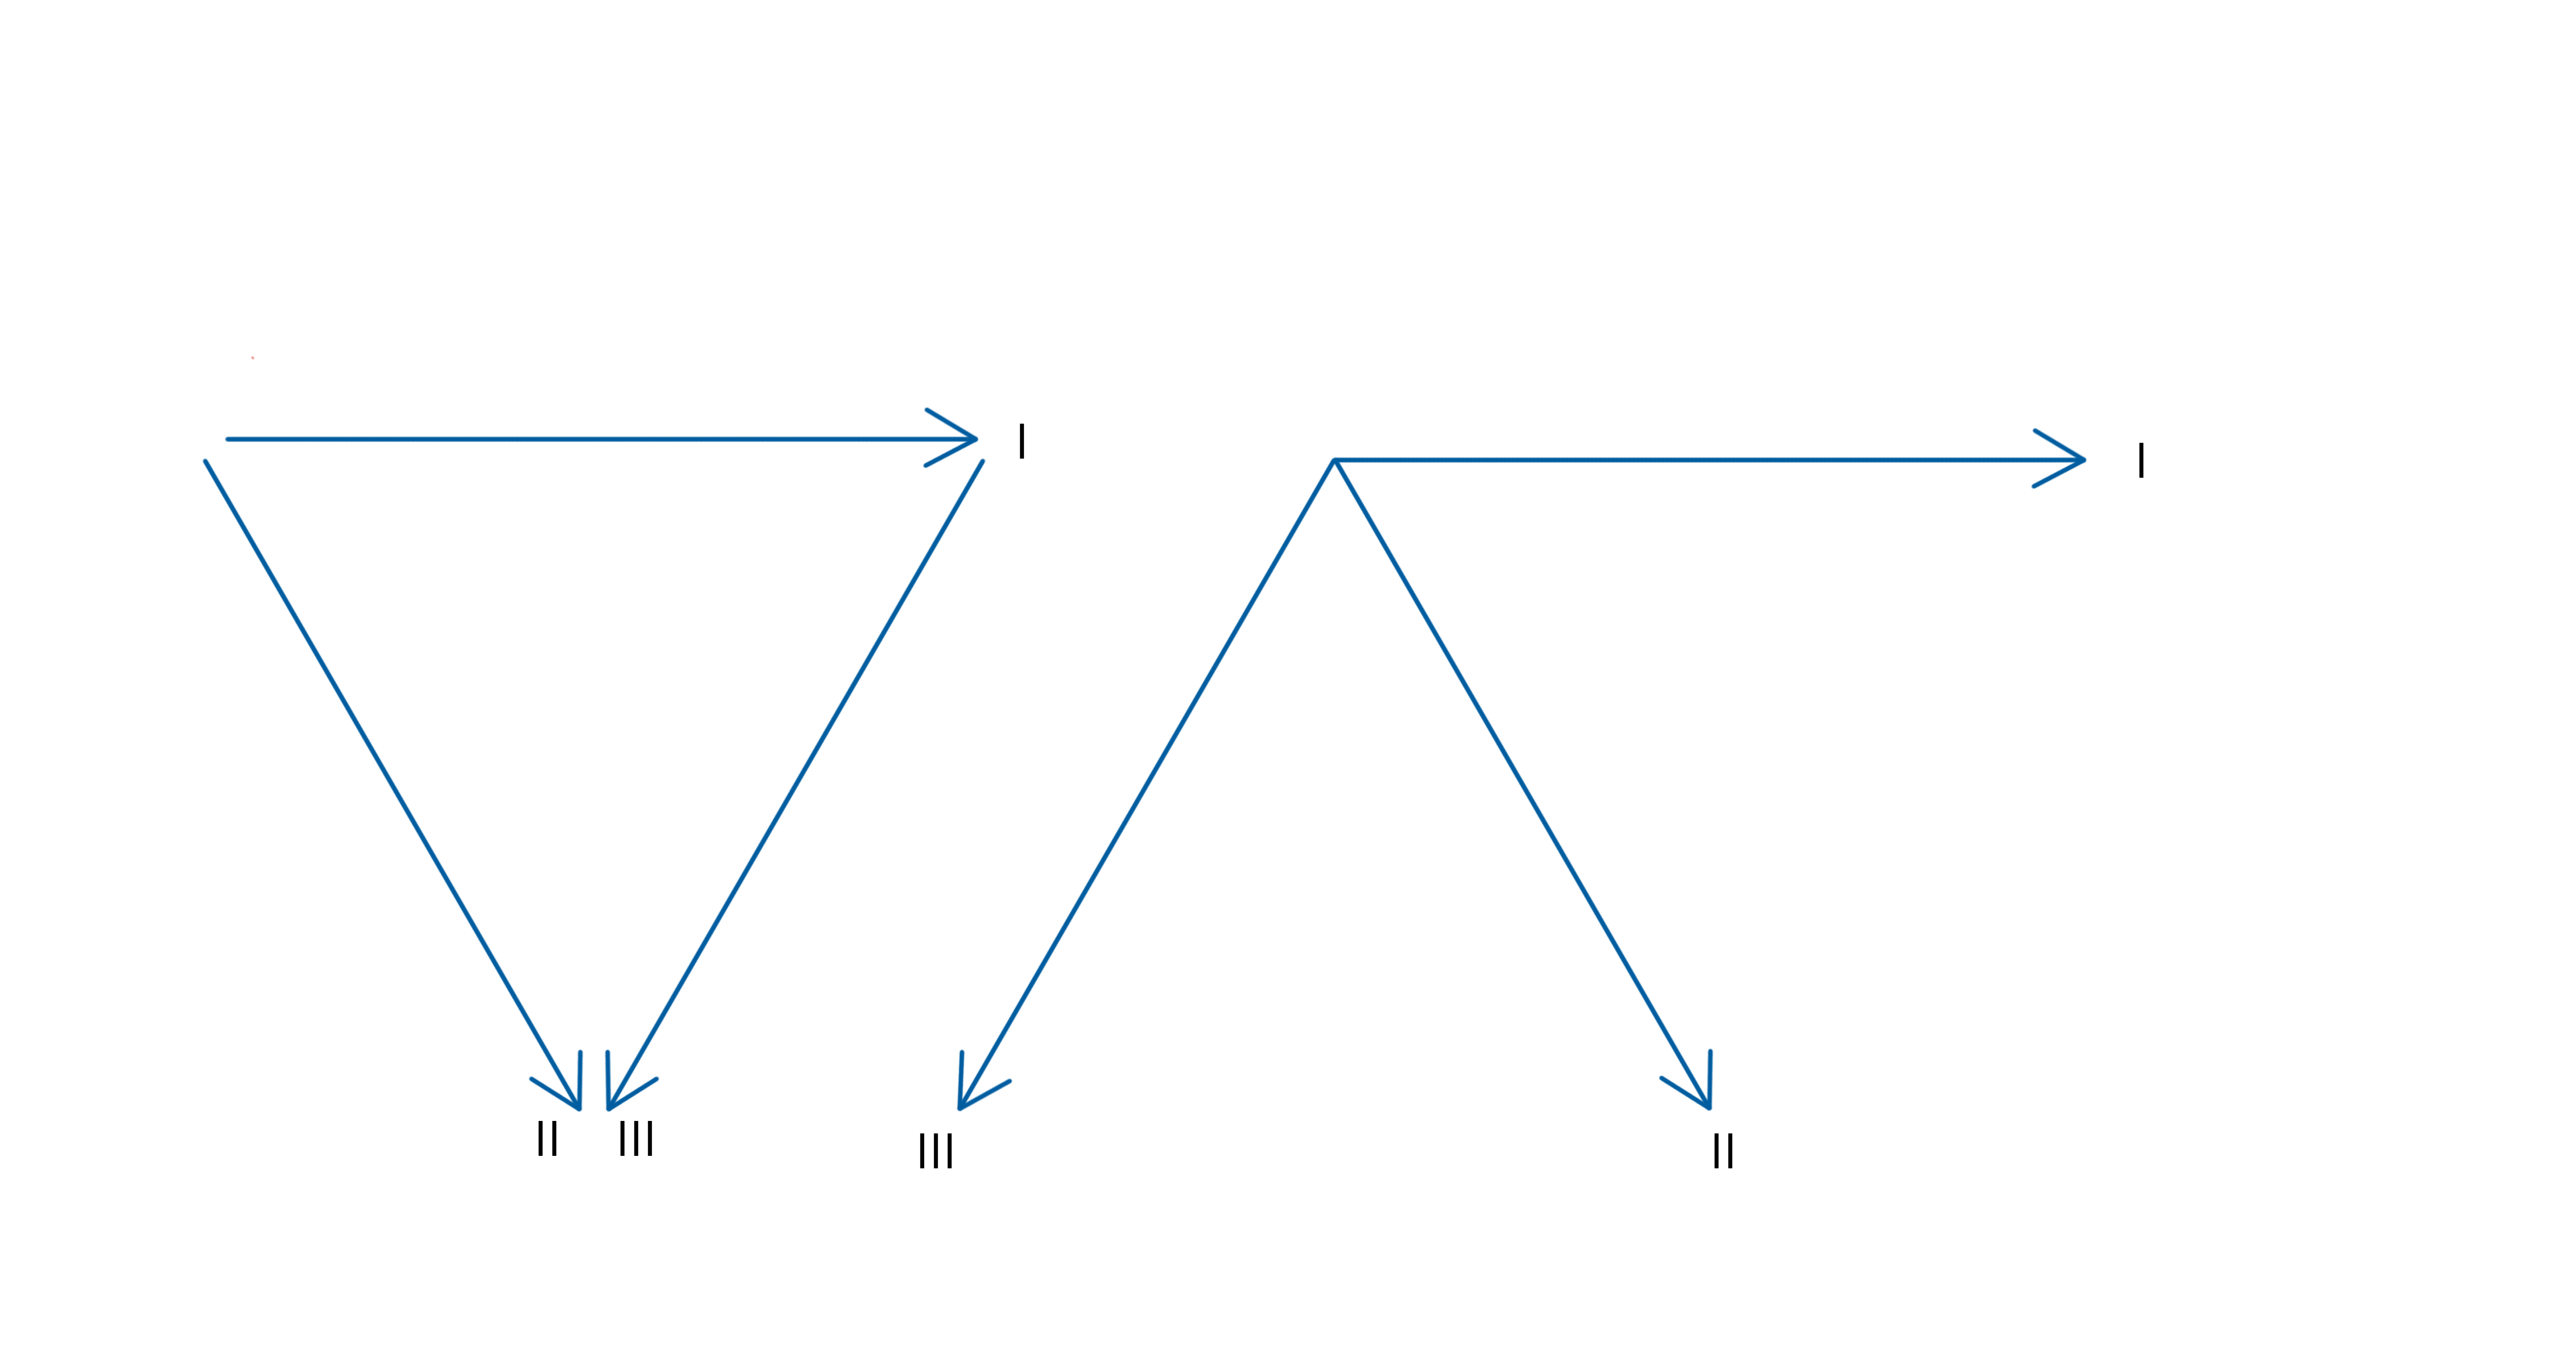 Diagram of Einthoven's Triangle with leads I, II and III